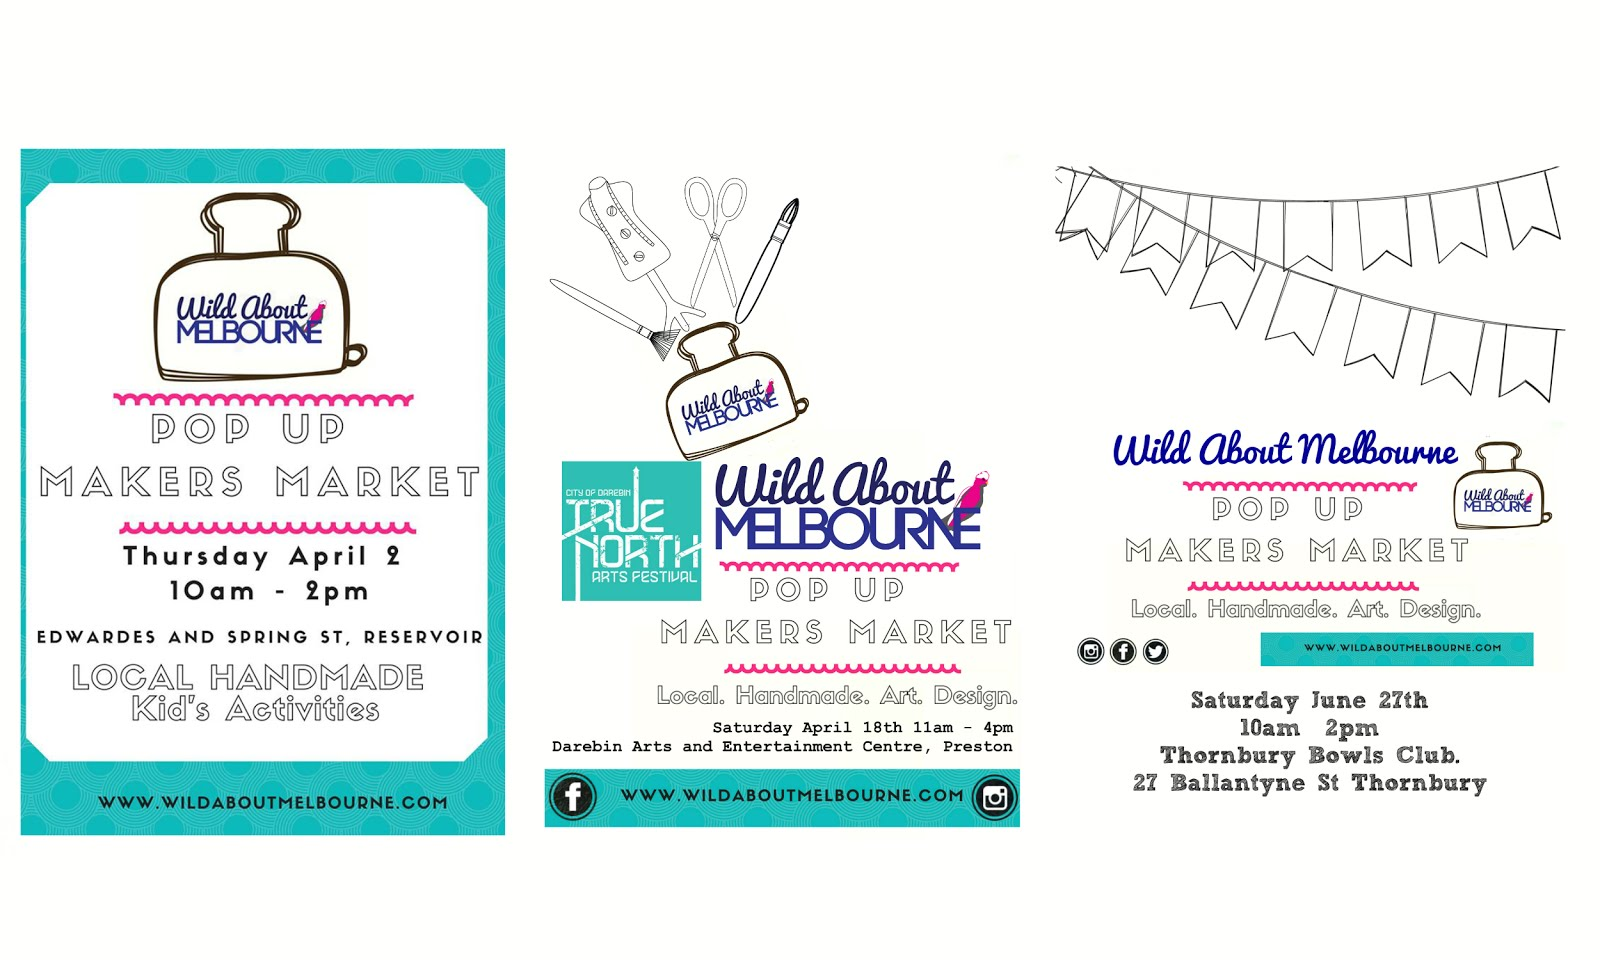 Wild About Melbourne Pop Up Makers Market